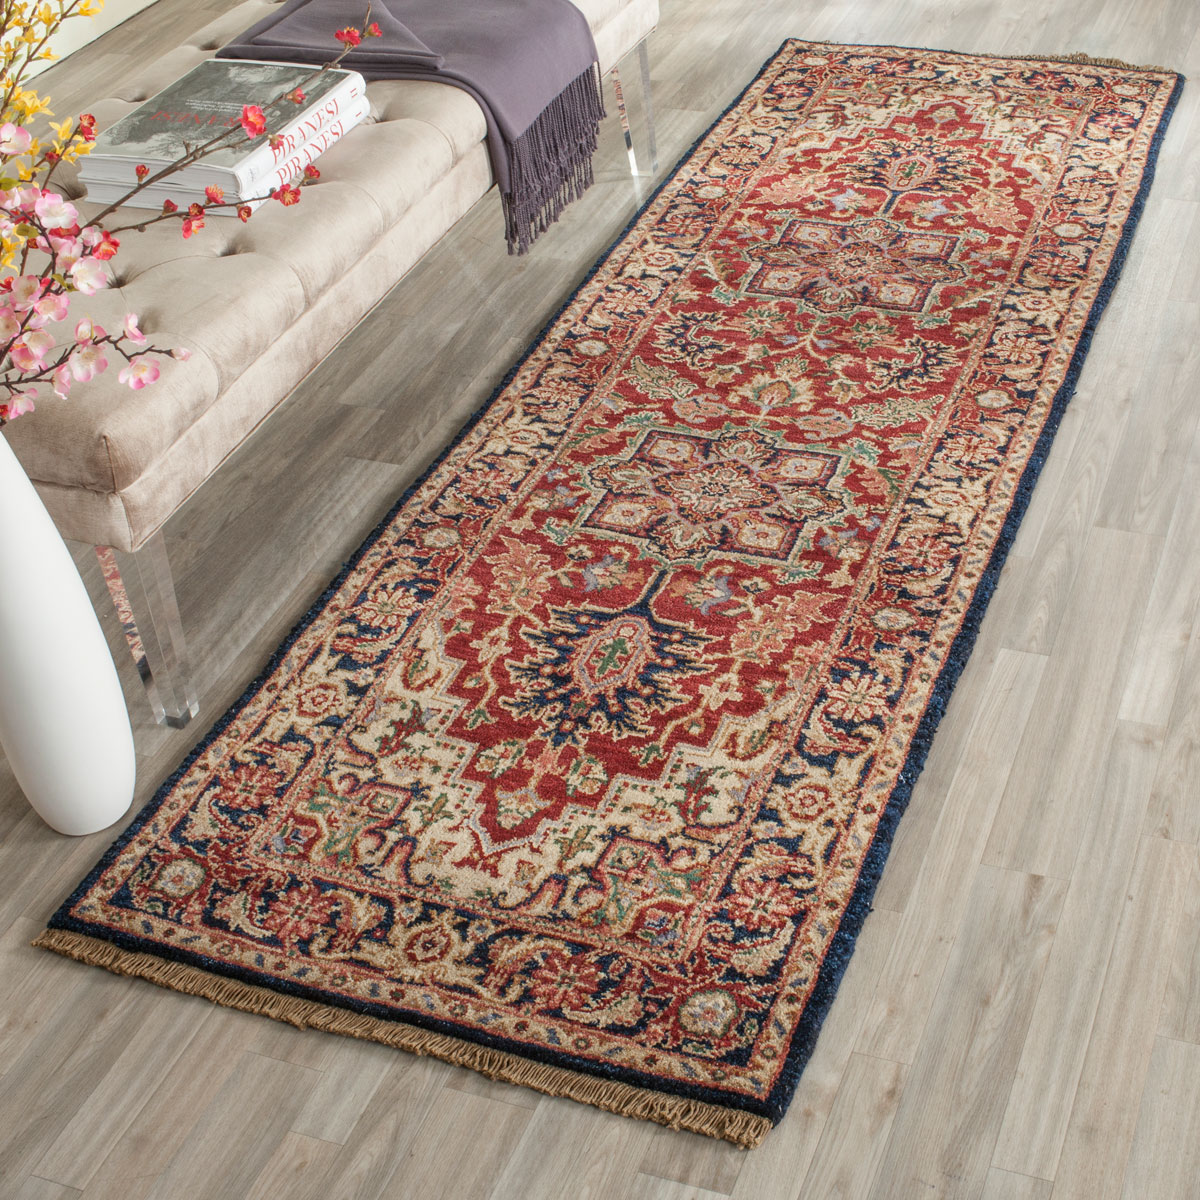 Old World Area Rugs By Safavieh